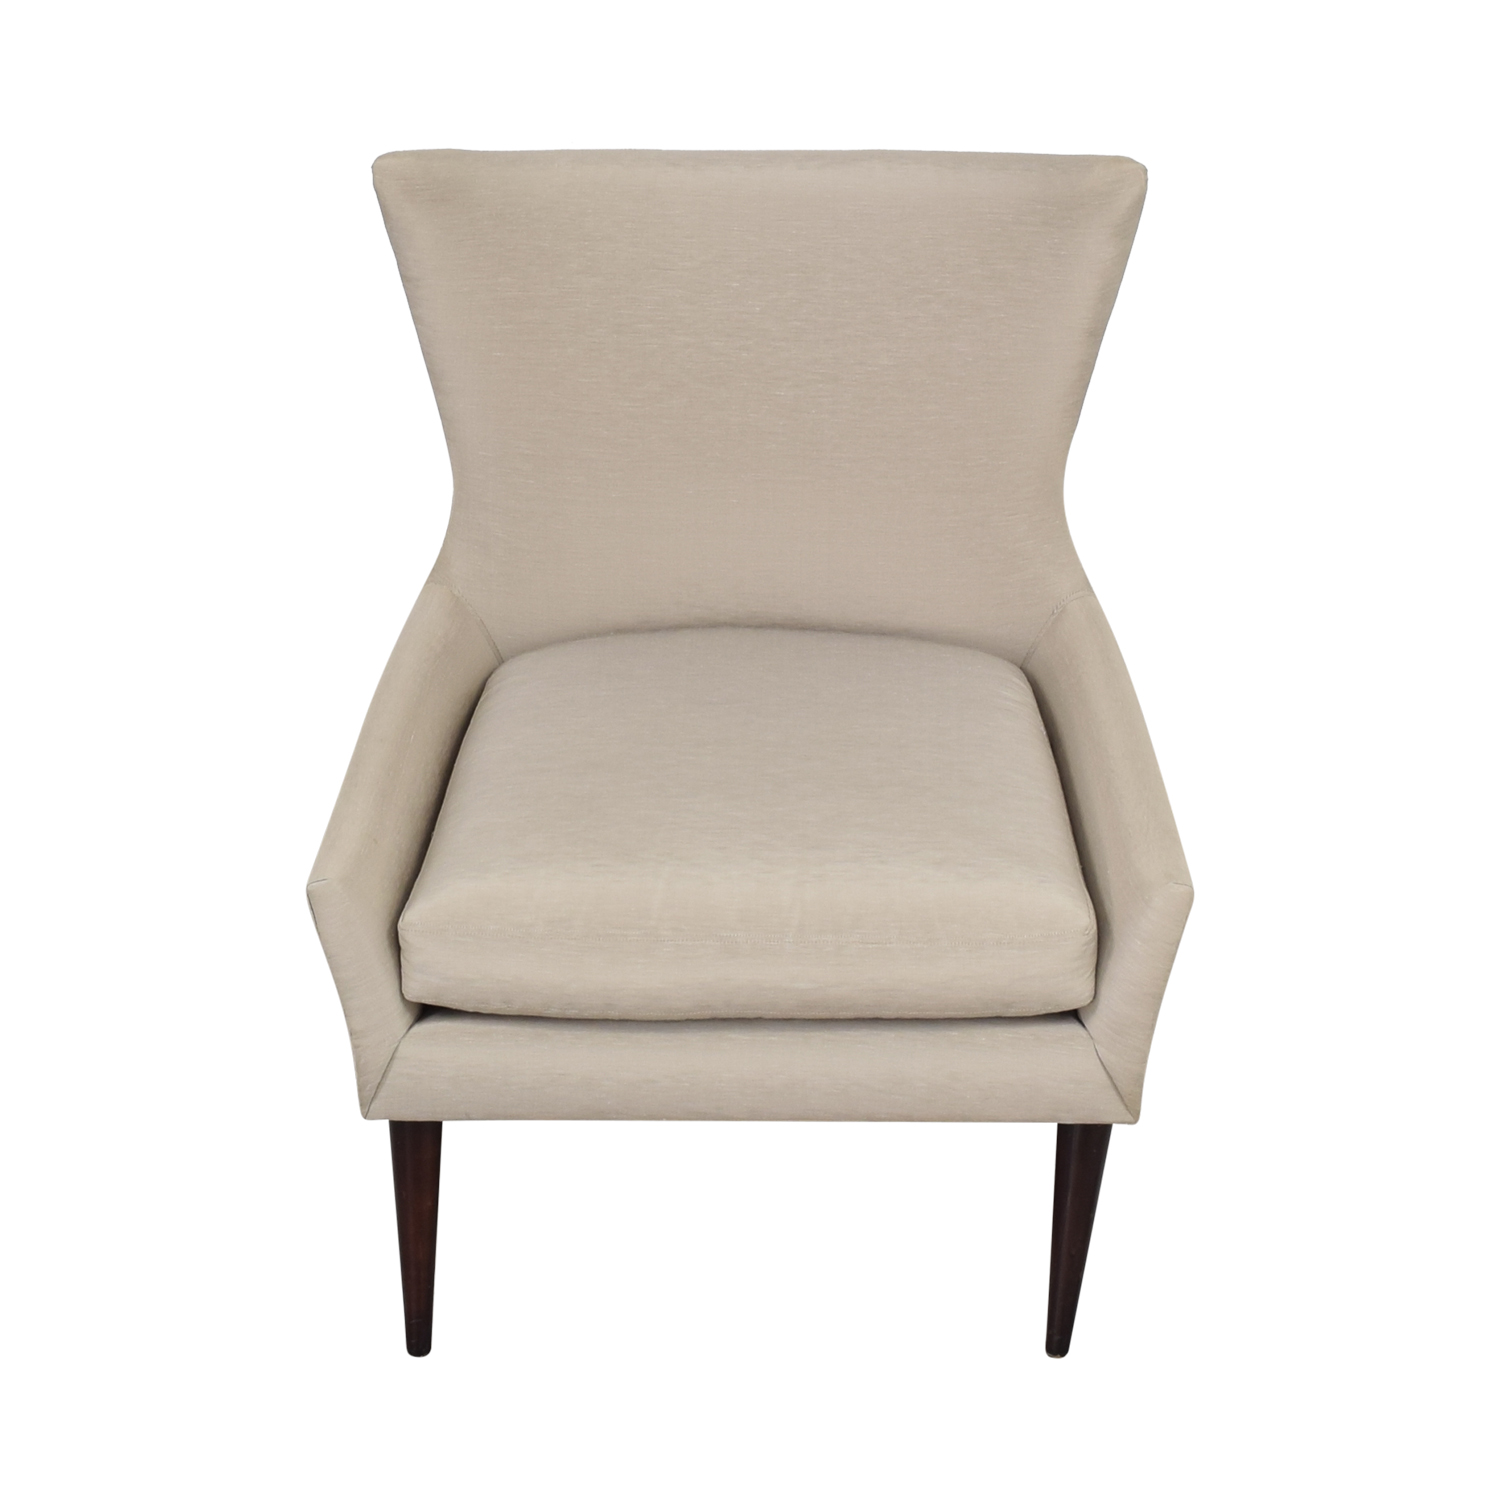 Room & Board Room & Board Lola Chair Accent Chairs